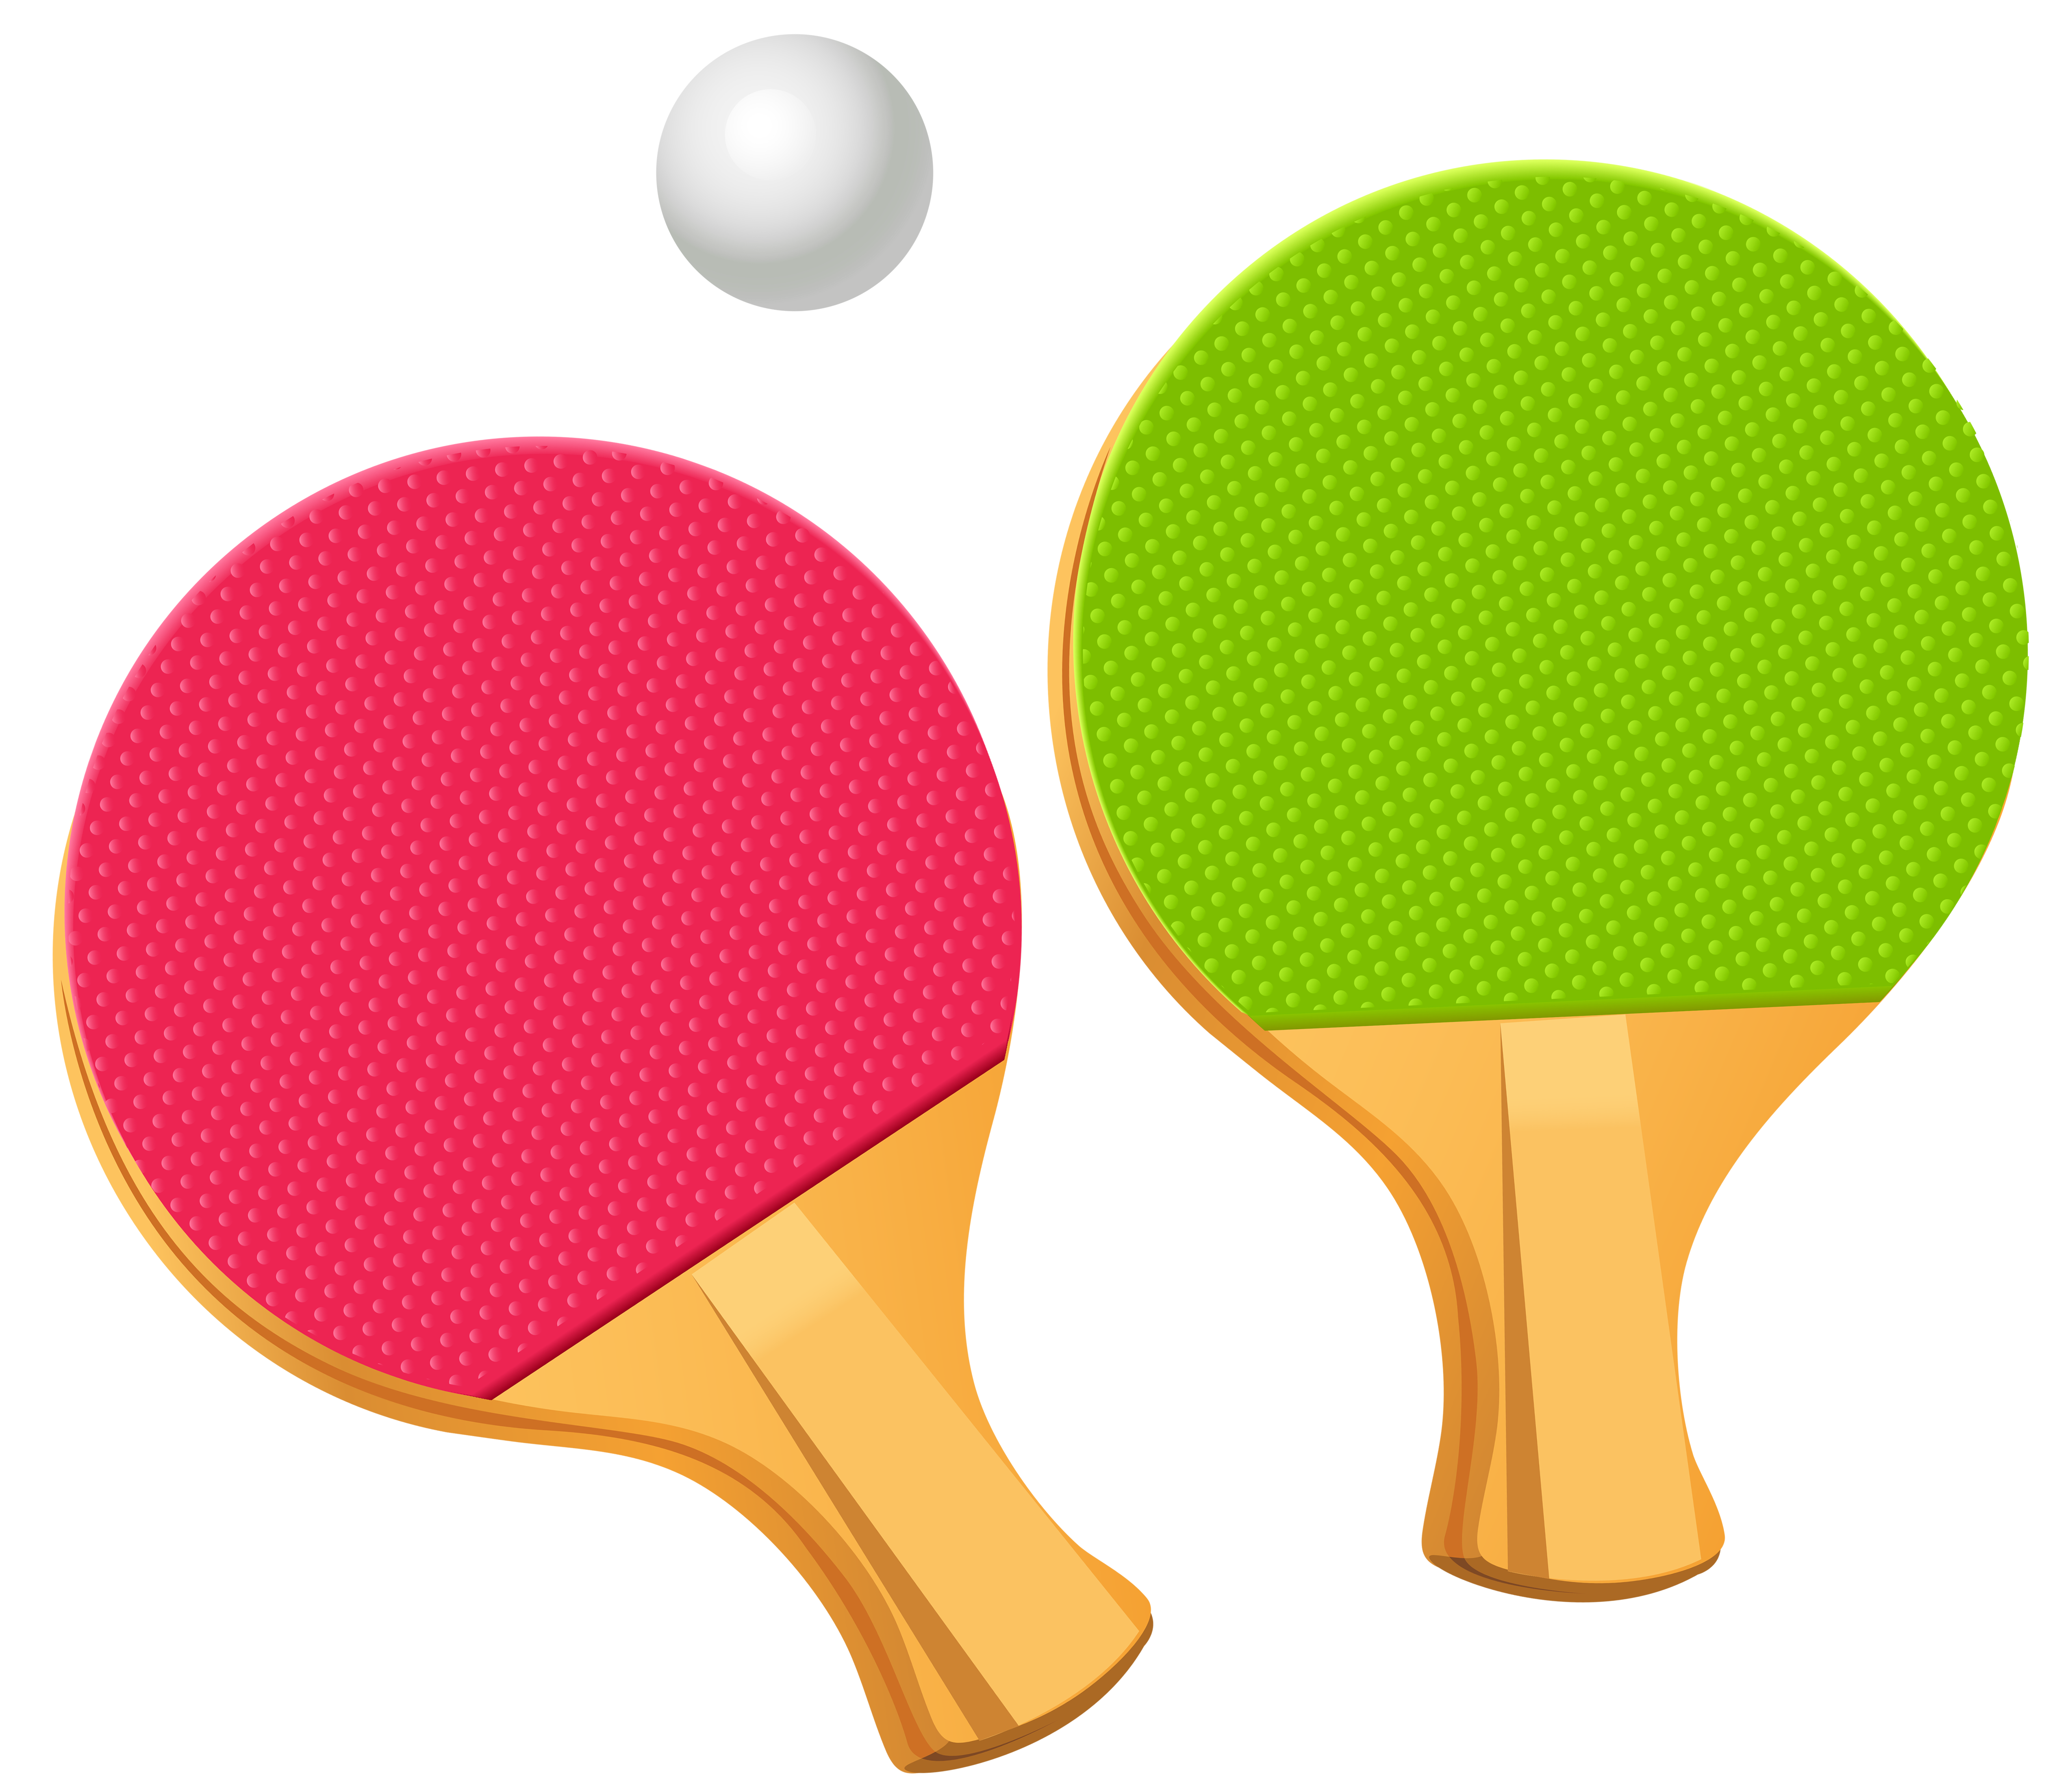 Table Tennis Ping Pong Paddles PNG Vector Clipart.